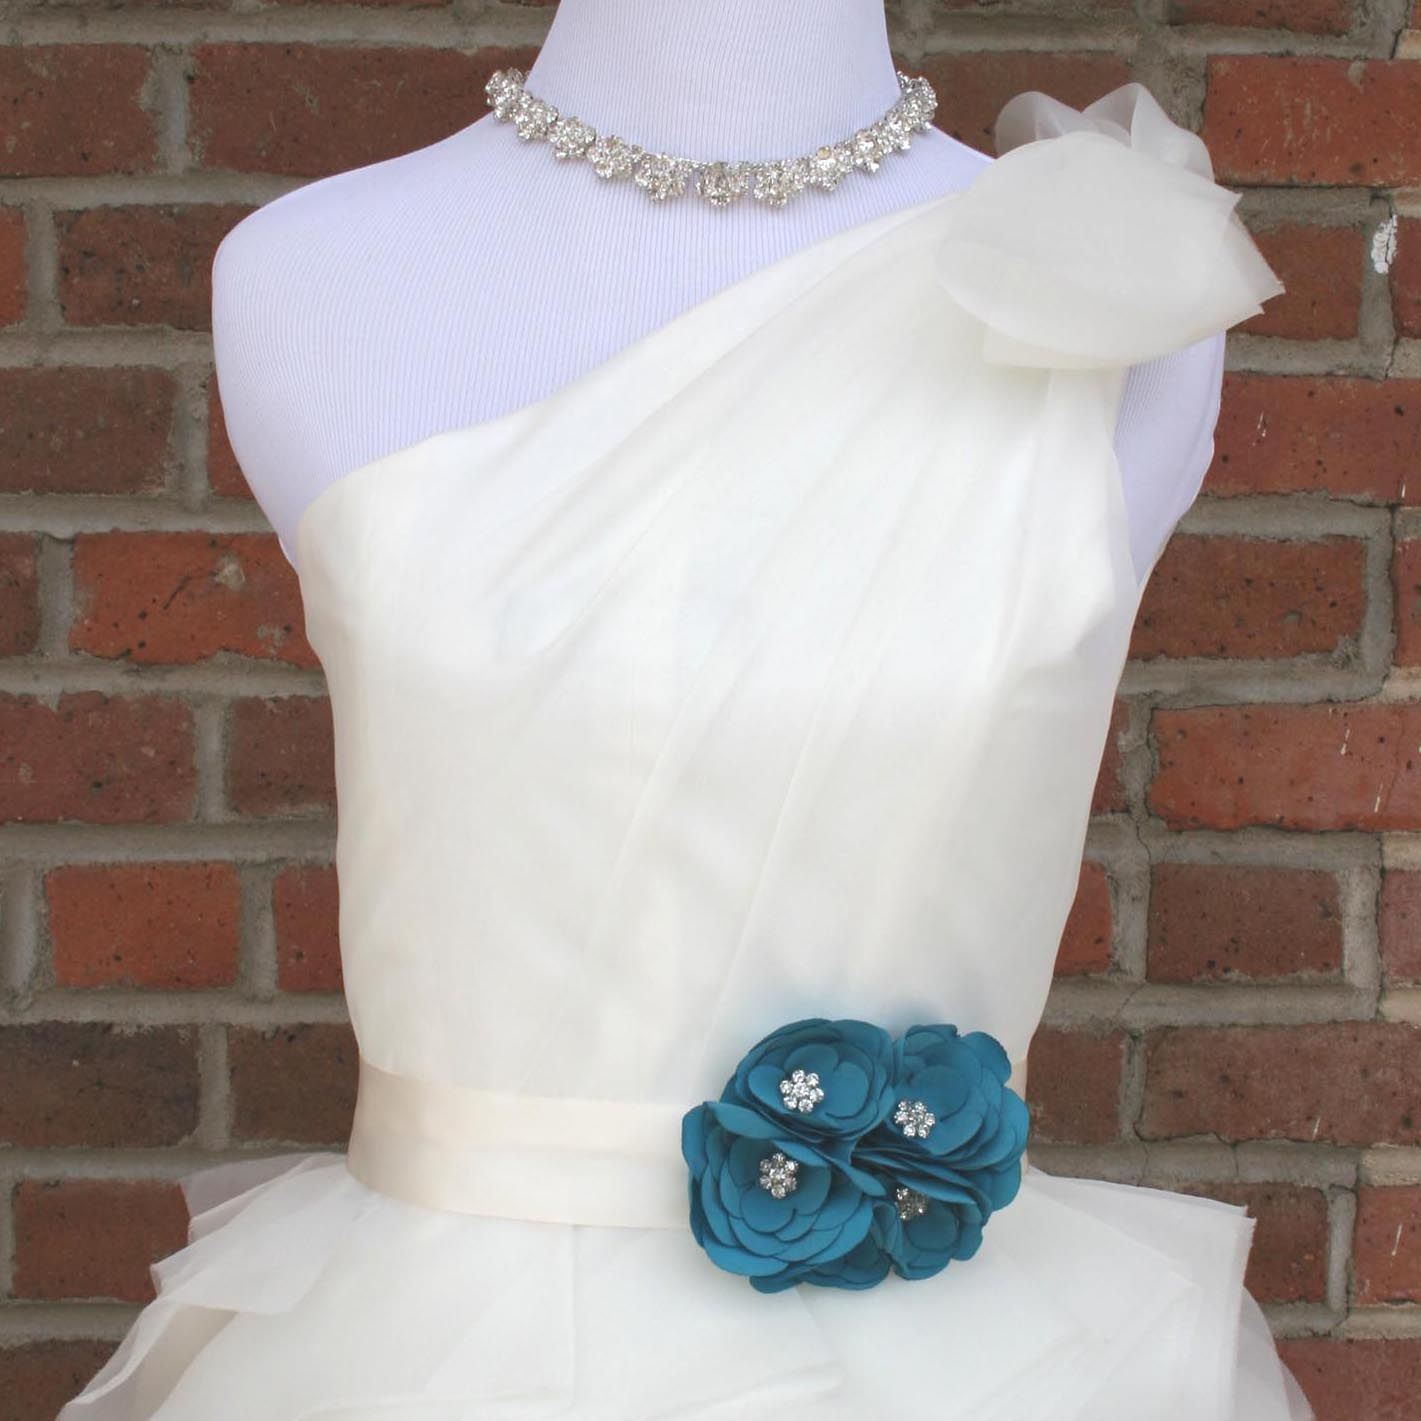 Custom wedding sash u ivory wedding dress sash with cluster of